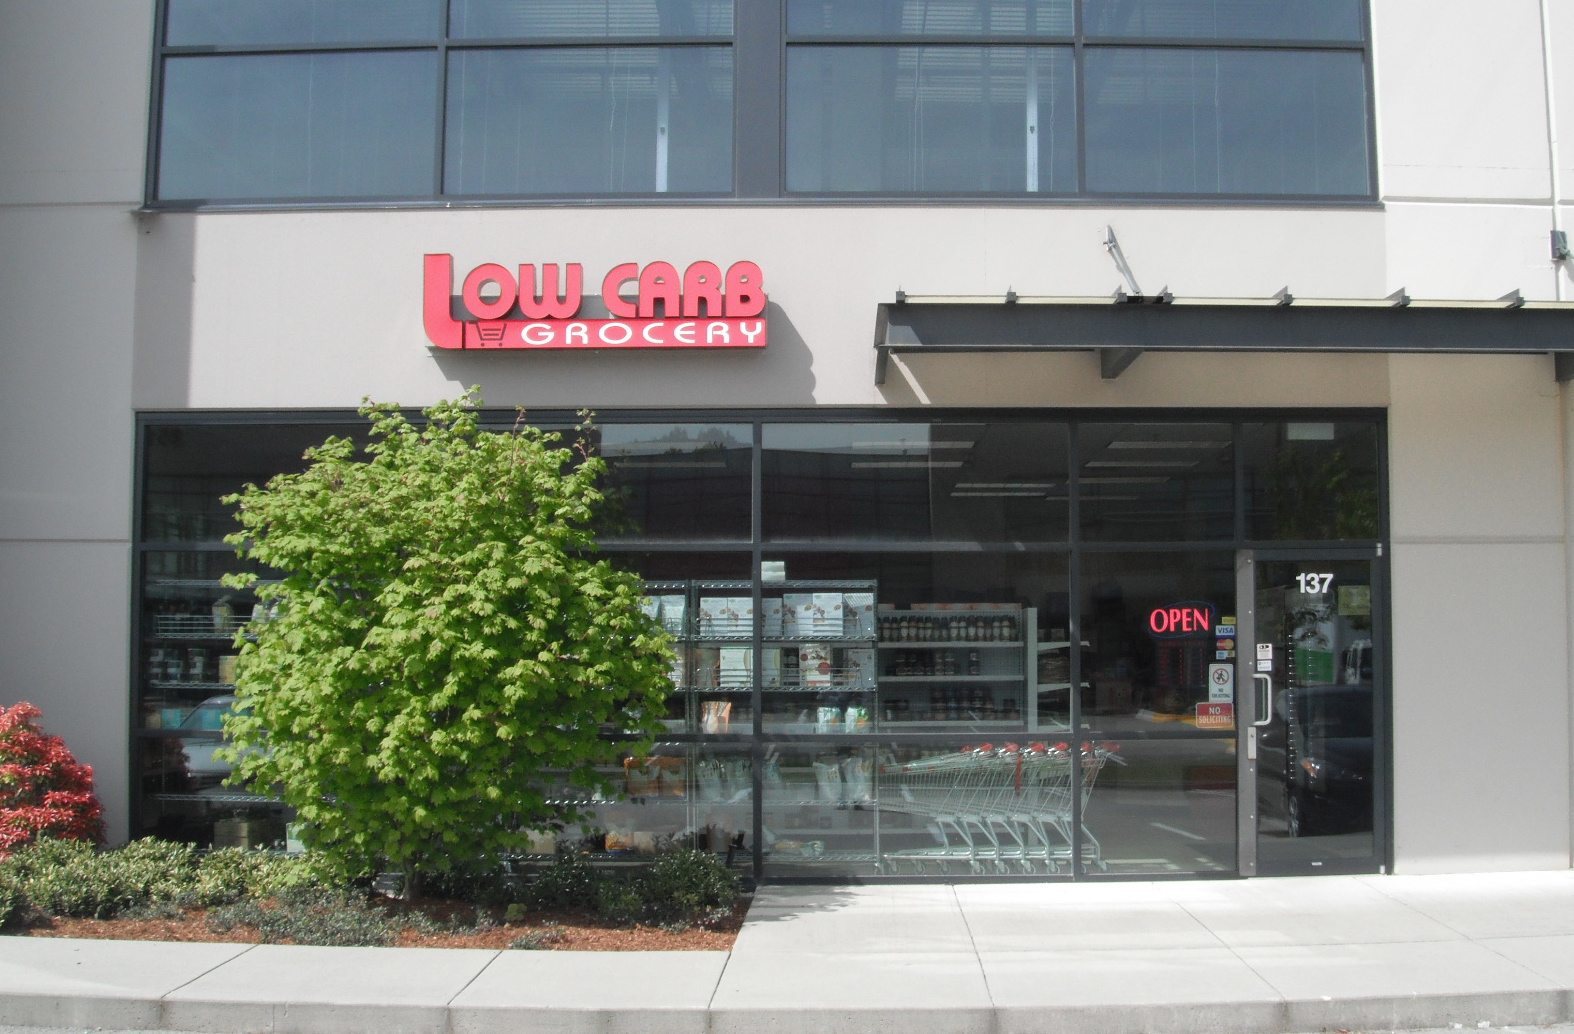 The Low Carb Grocery in Burnaby, BC (Greater Vancouver)